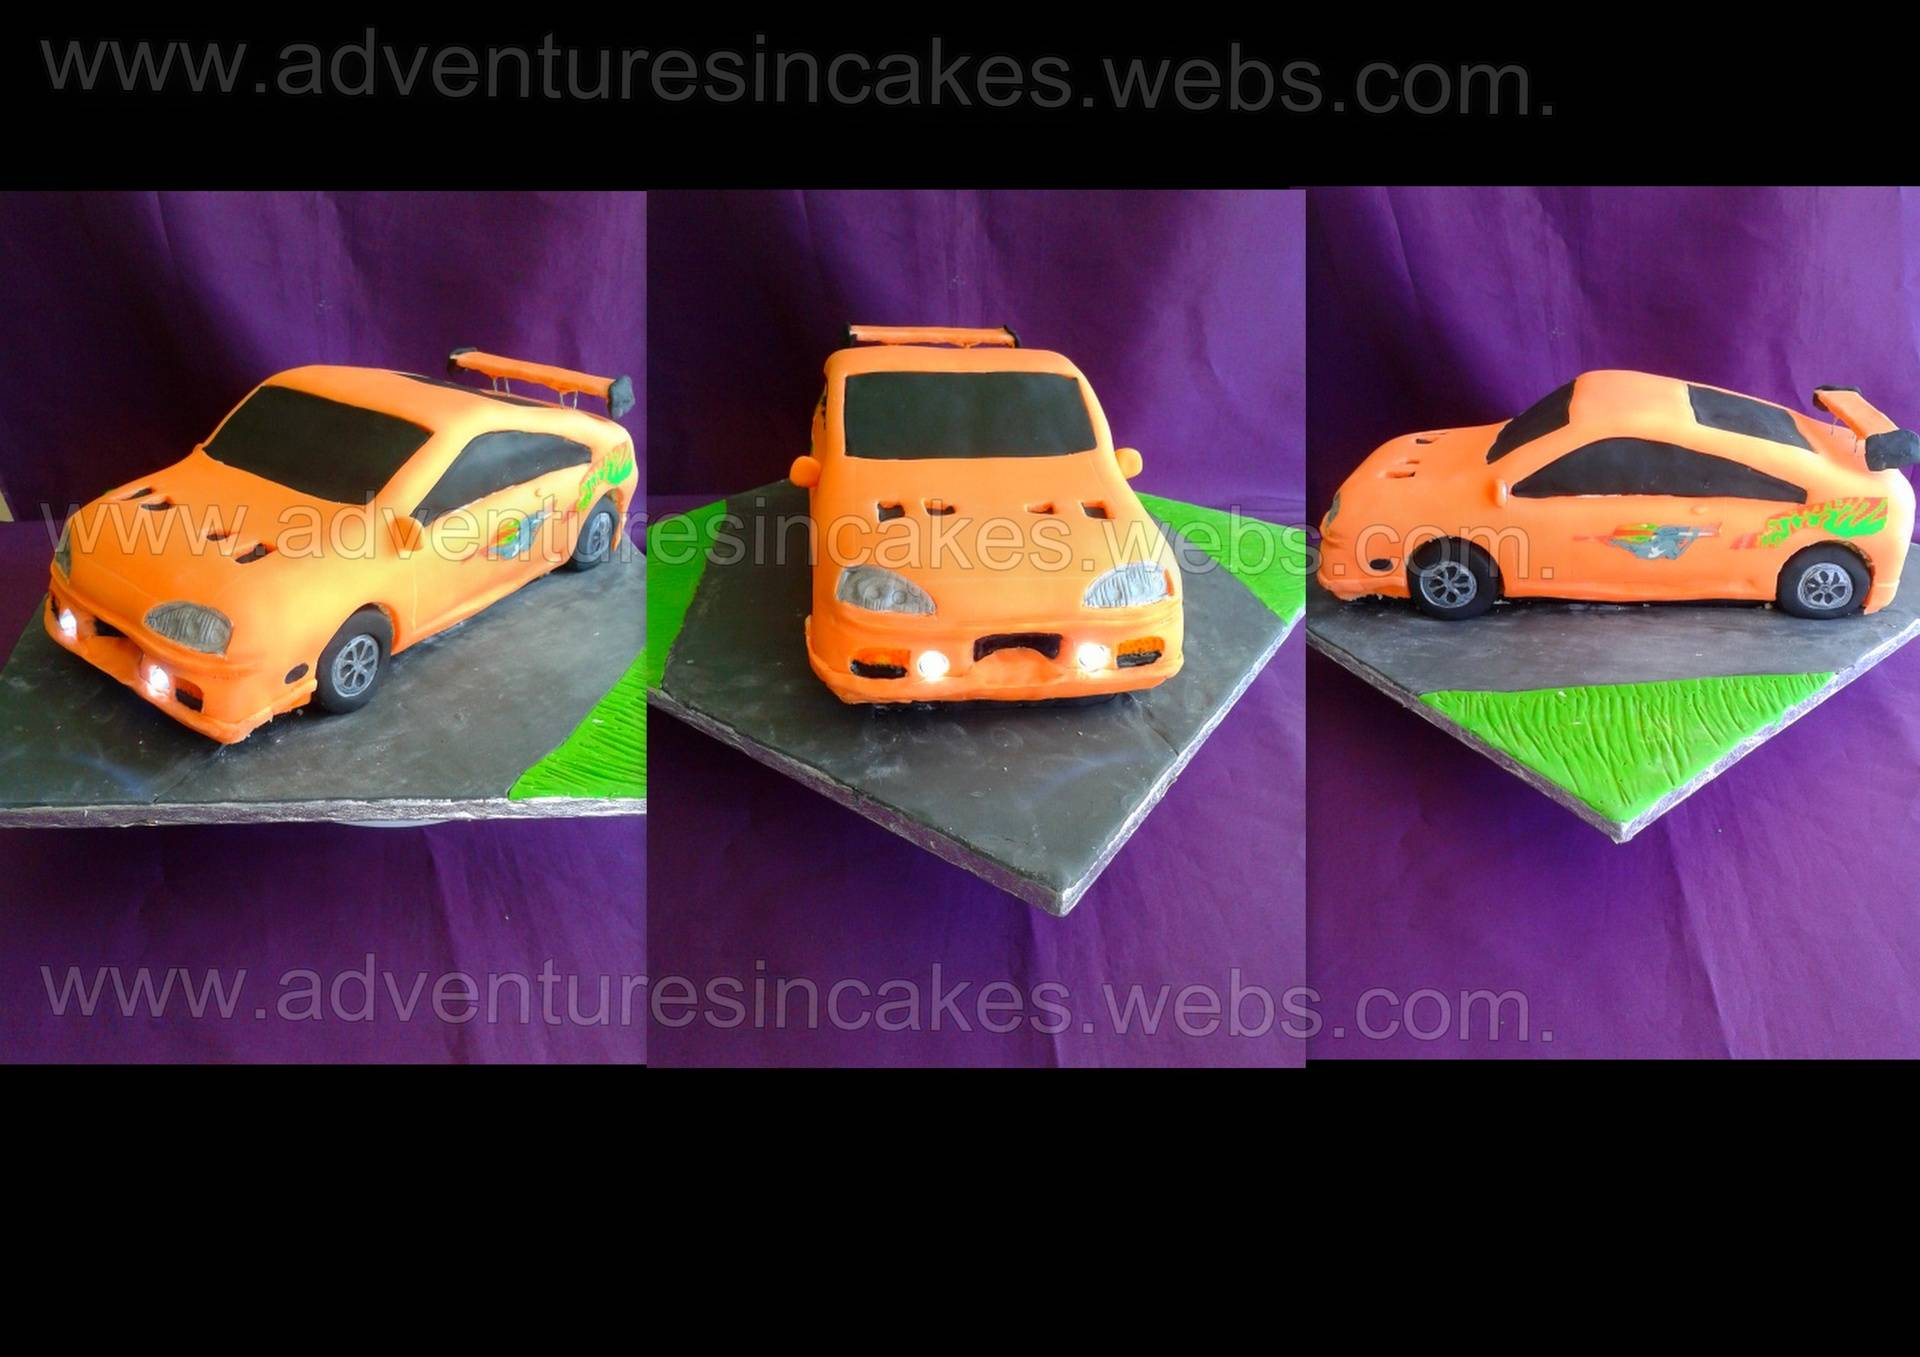 Car Cake with real working lights